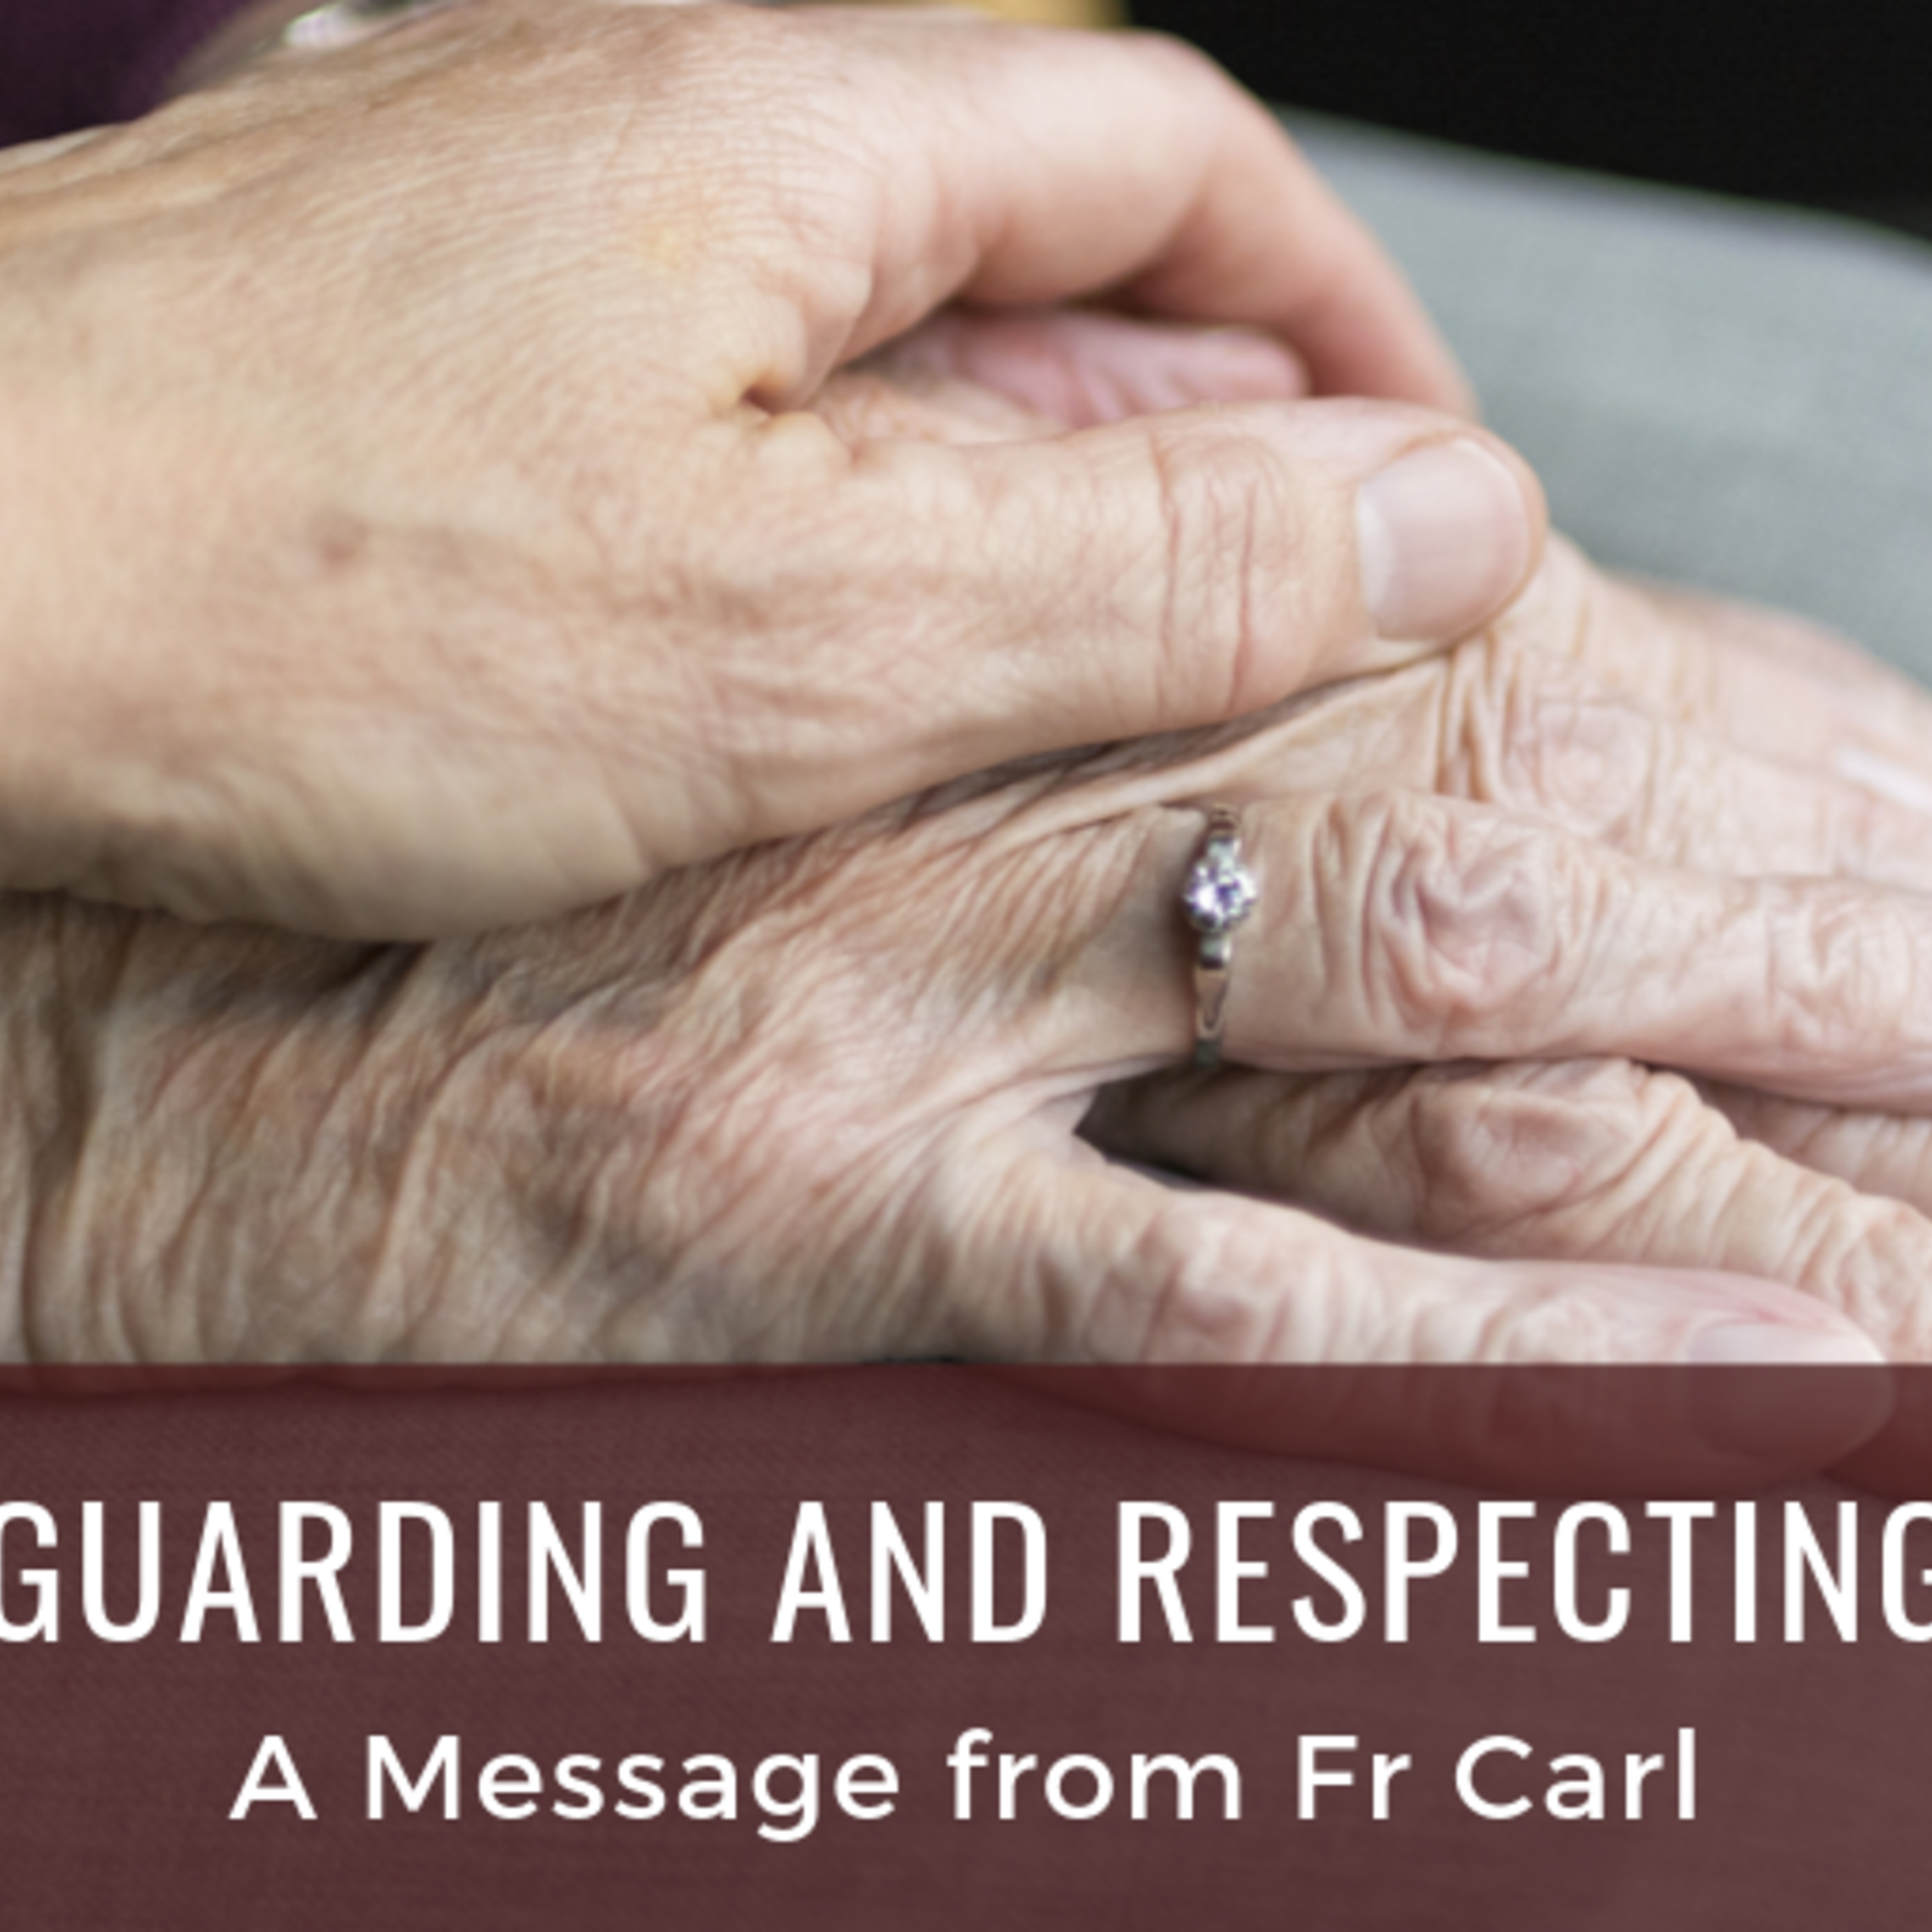 Safeguarding And Respecting Life